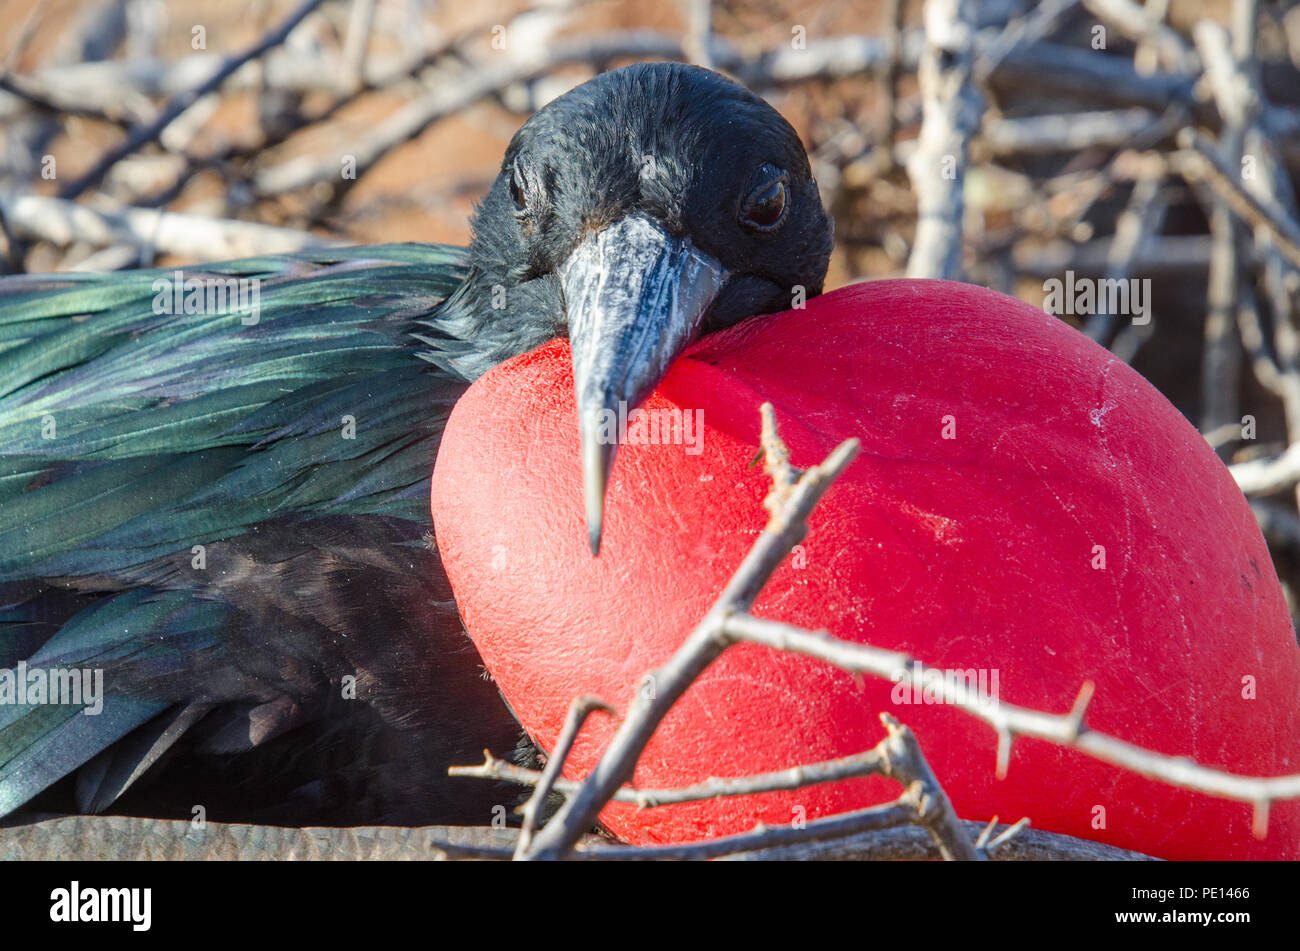 Closeup of adult male Magnificent frigate bird with large inflated gular pouch looking at camera from its nest. - Stock Image